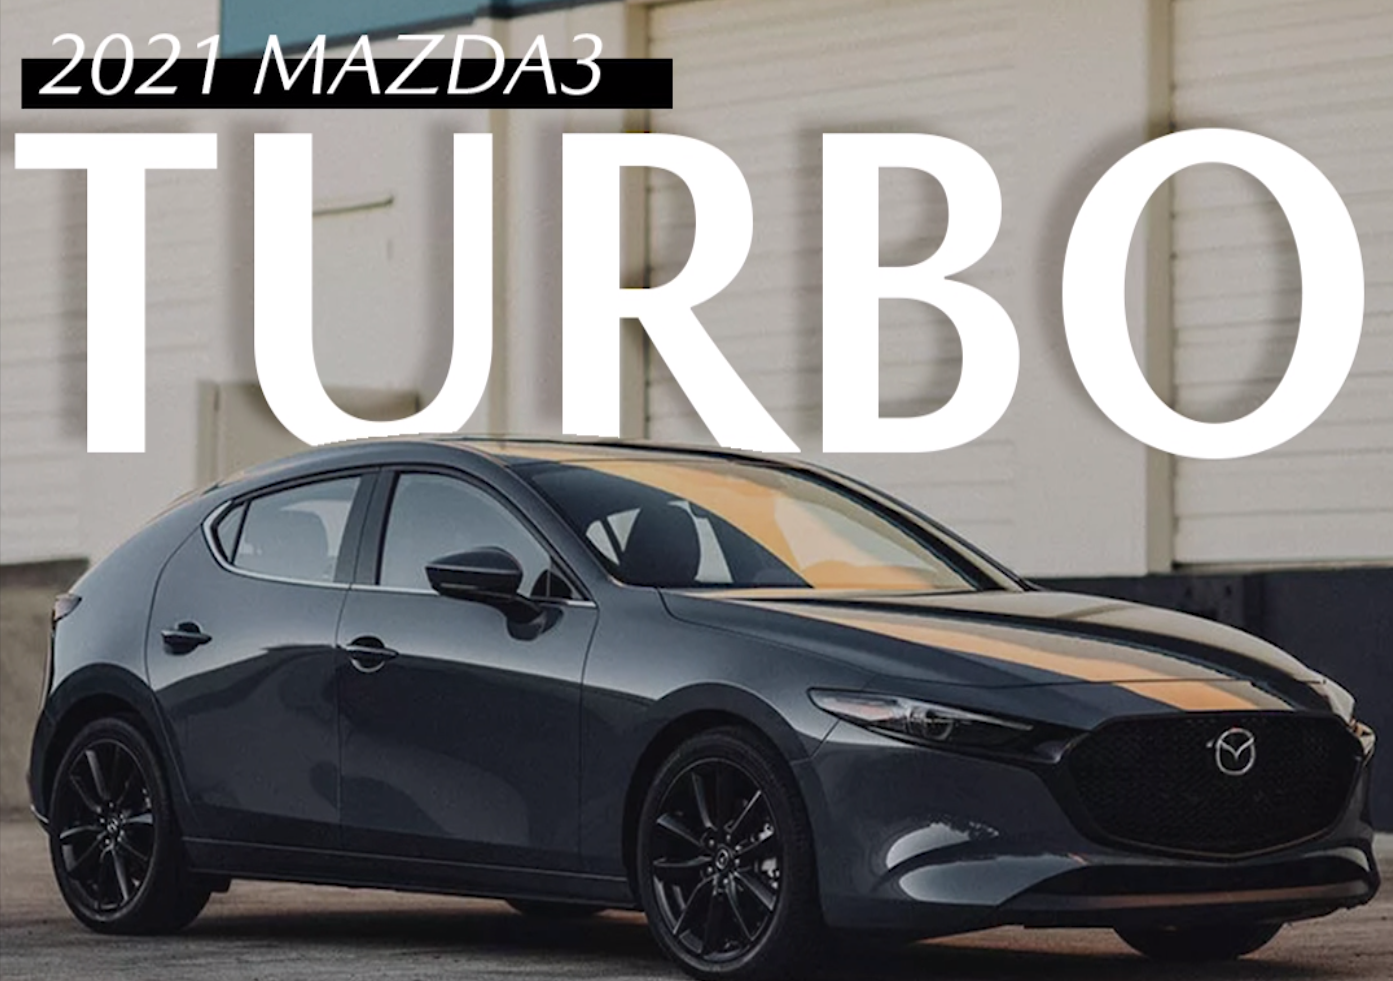 Mazda Hints at a Turbo Mazda 3